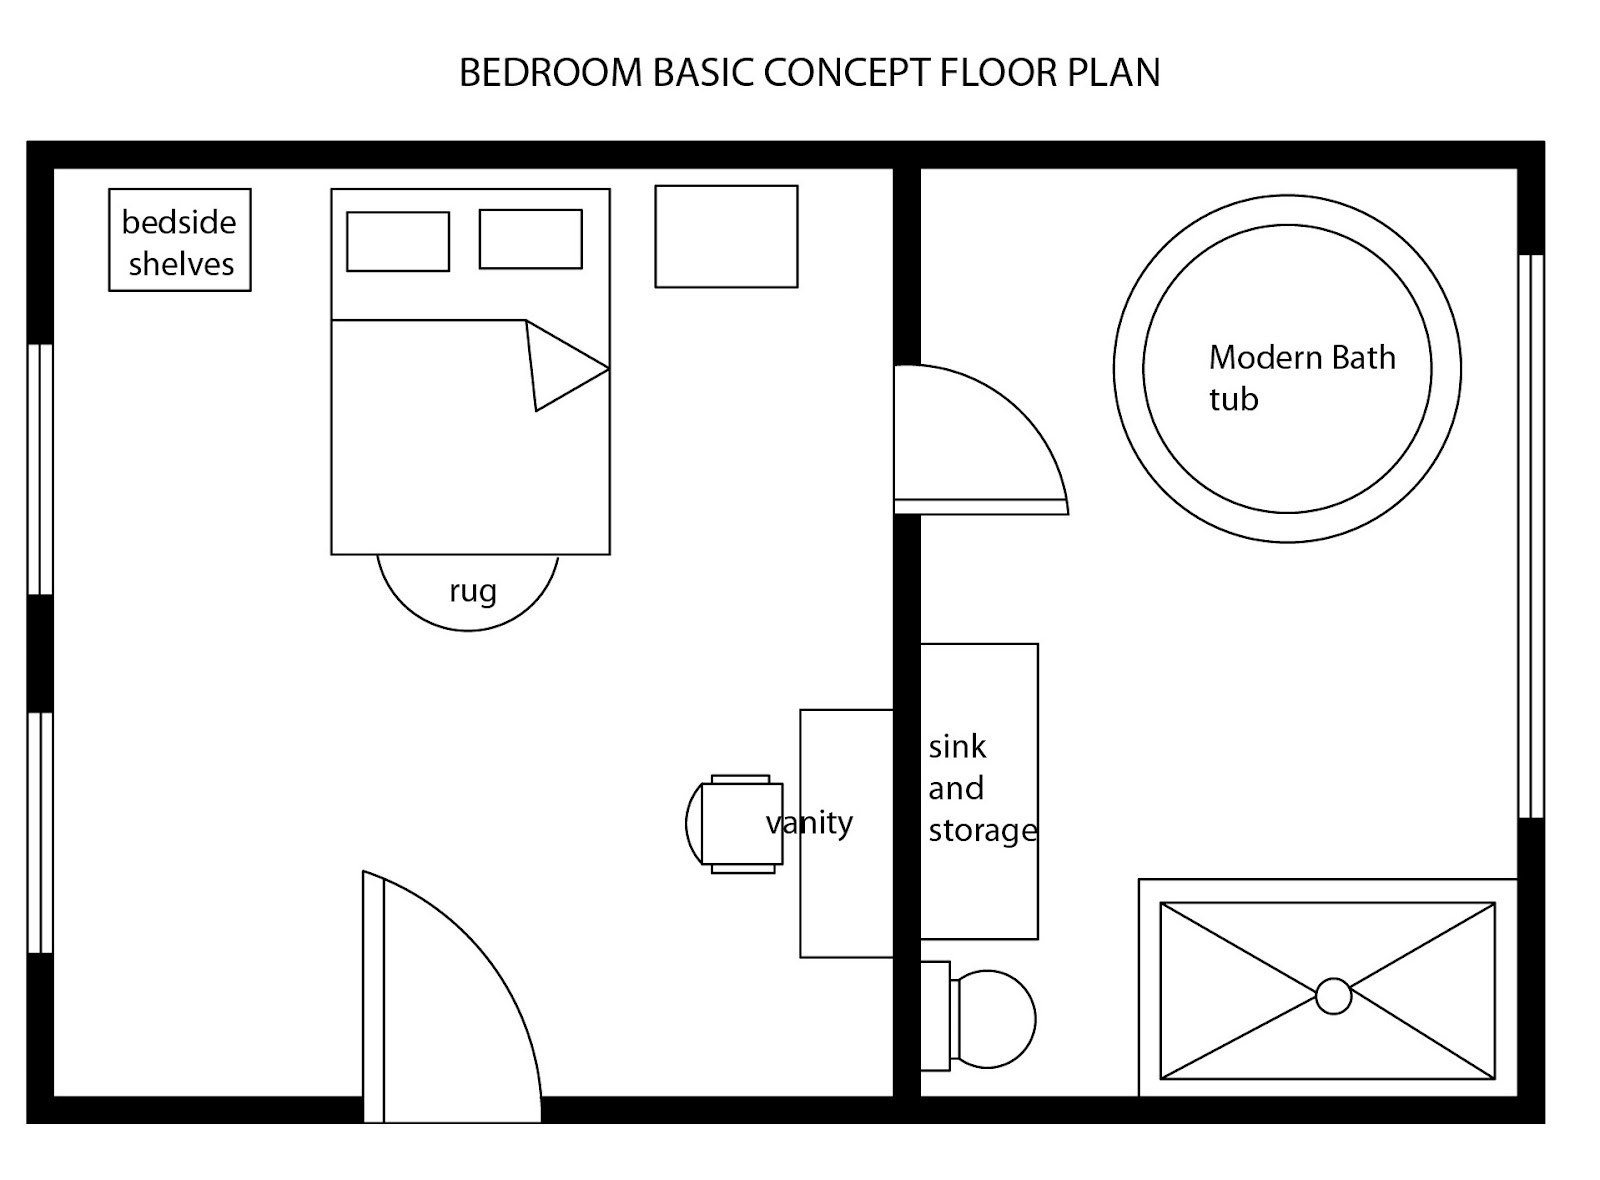 Interior design decor modern bedroom basic floor plan for Modern 1 bedroom house plans